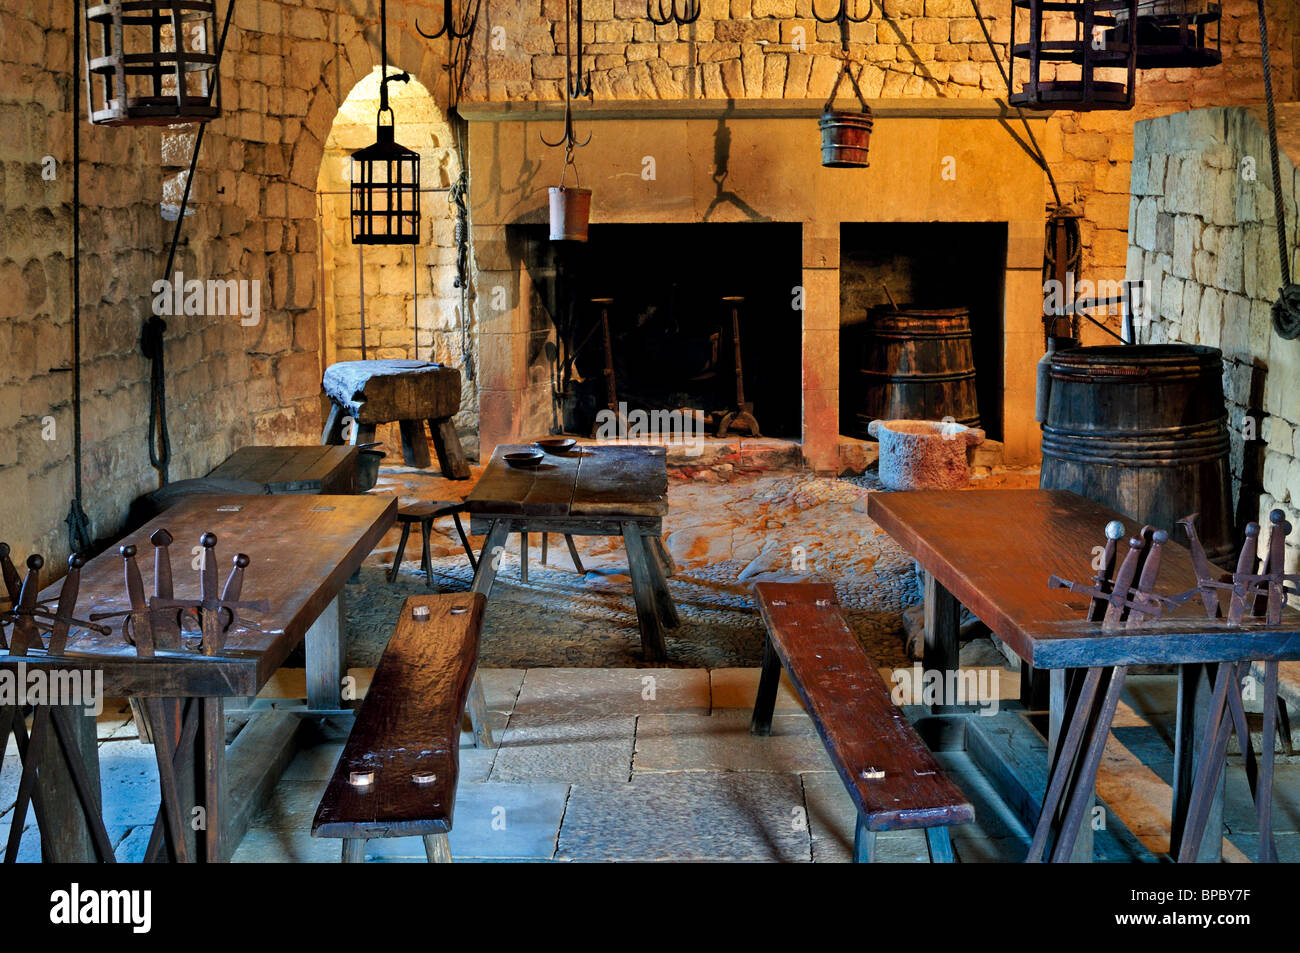 France: Medieval dining room and kitchen in the Chateau de Beynac - Stock Image